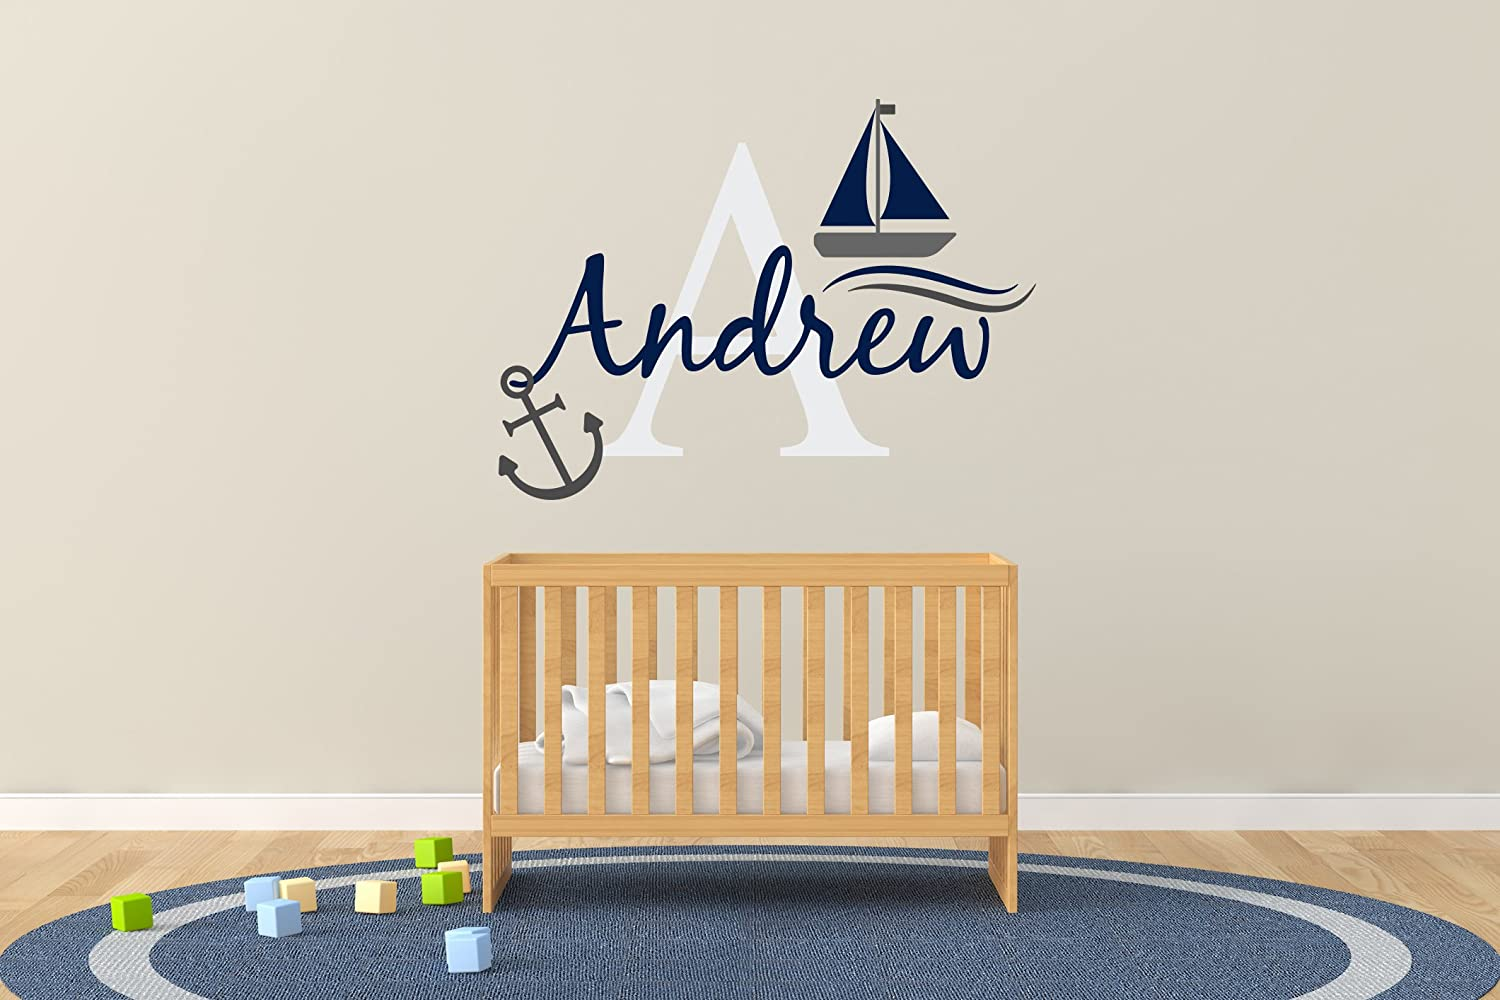 Nursery Wall Decal for Baby ROM Decorations Baby Boy R50 Custom Name /& Initial Boat and Anchor Wide 20x15 Height Nautical Theme Mural Wall Decal Sticker for Home Childrens Bedroom